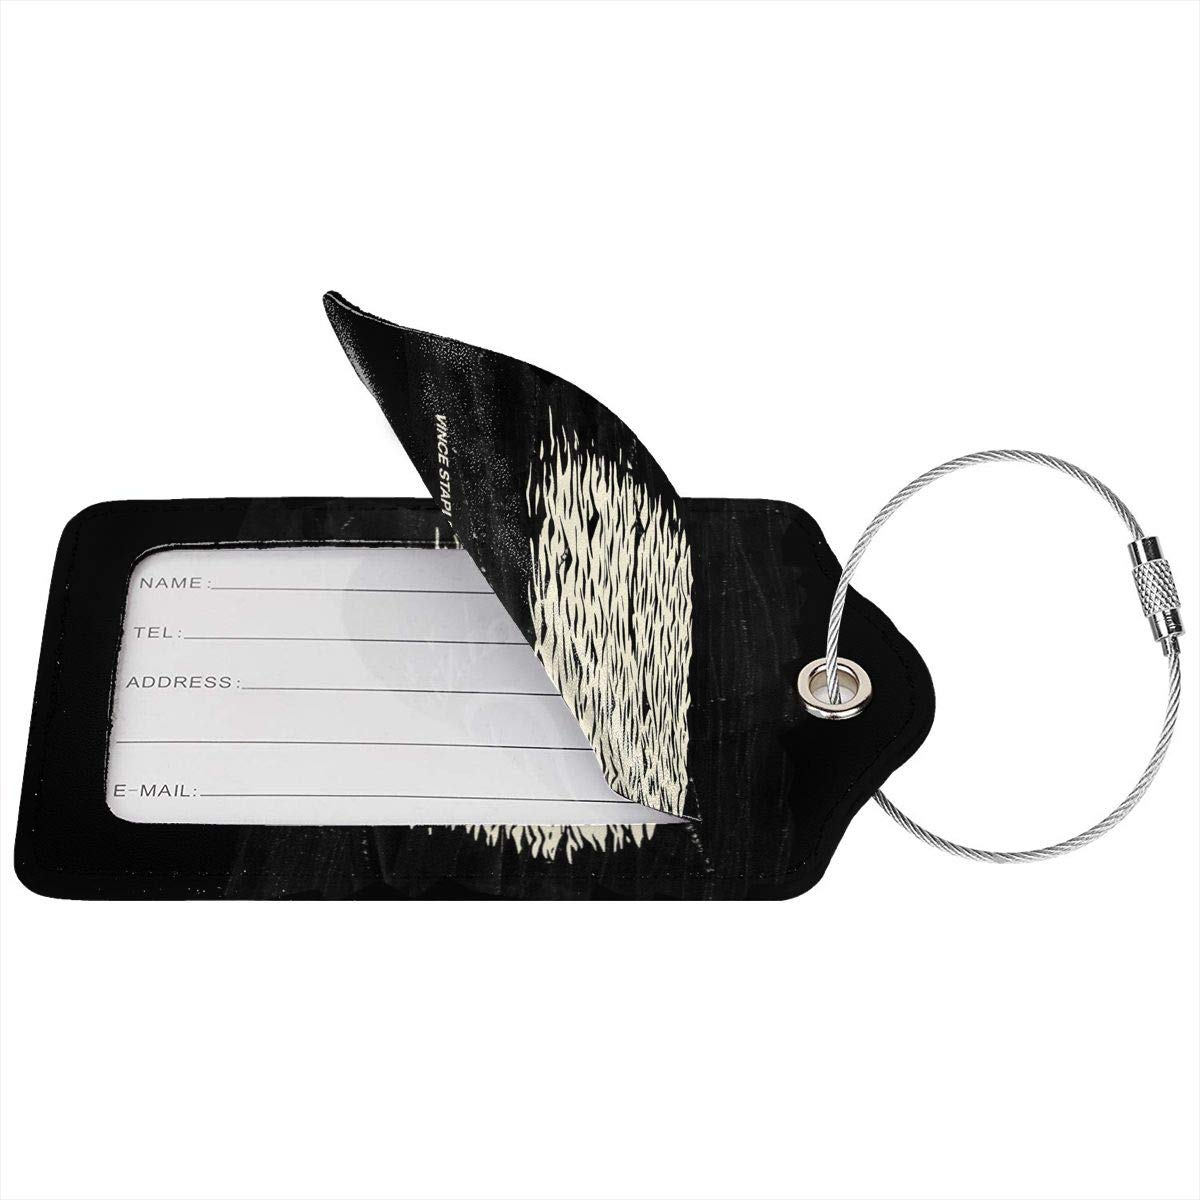 Vince Staples Summertime Leather Luggage Tag Travel ID Label For Baggage Suitcase